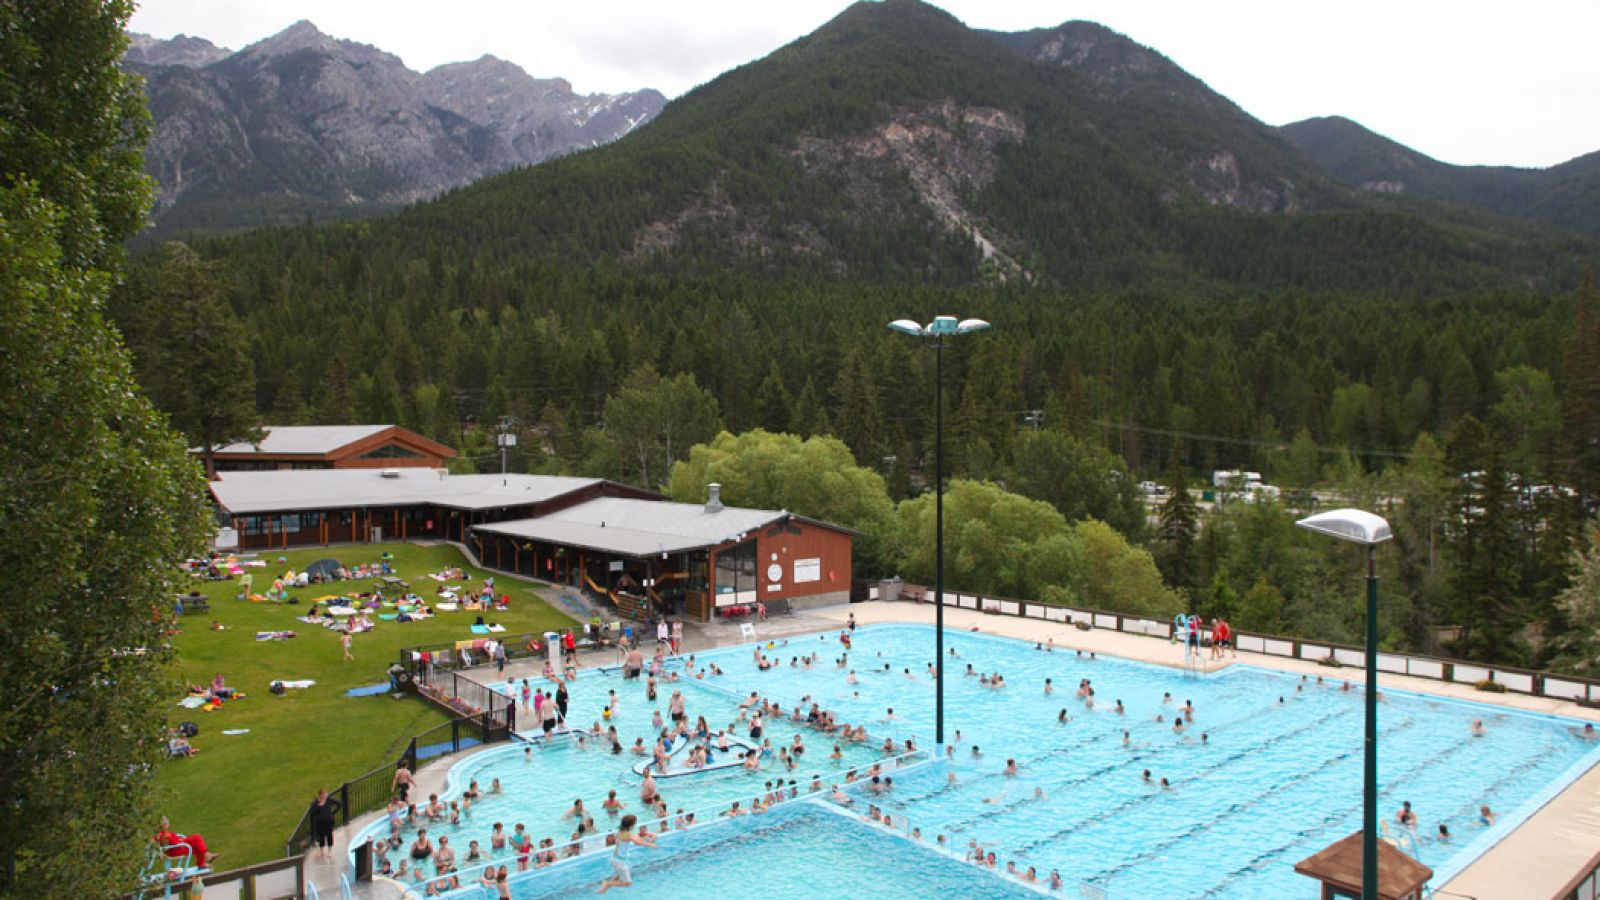 Fairmont Hot Springs Resort & pool from above.